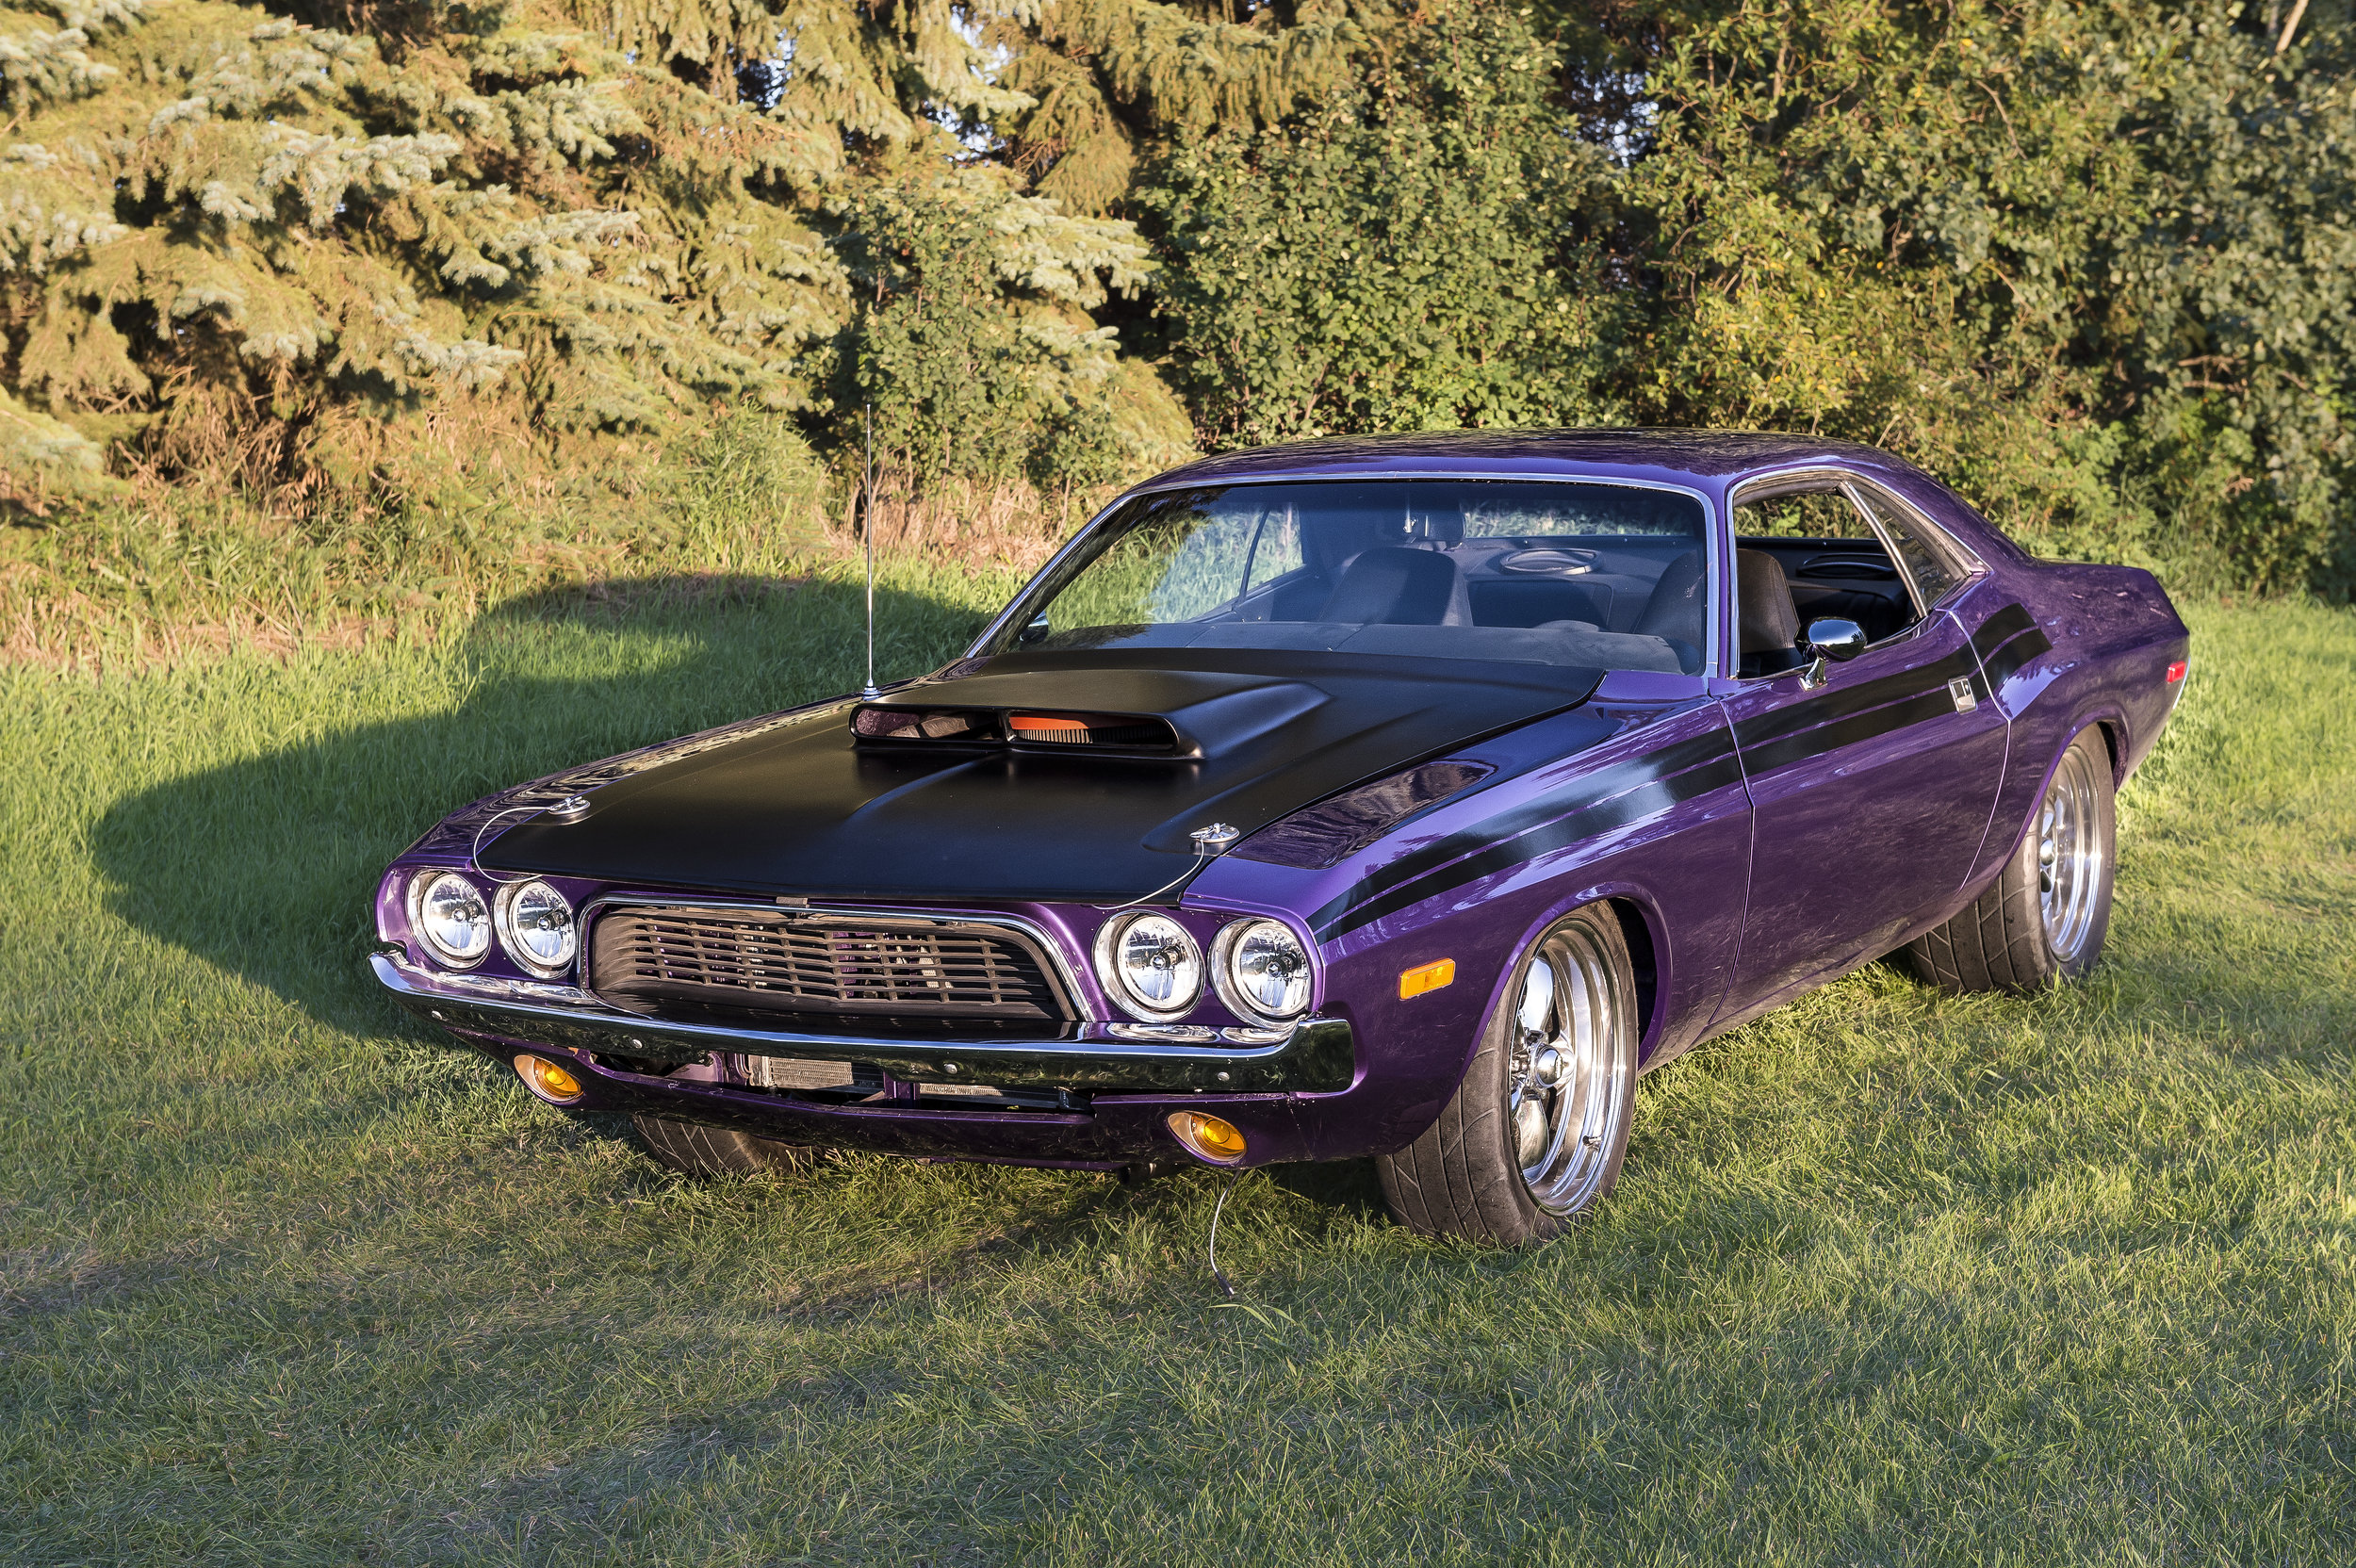 "1974 Dodge Challenger    This Car was complete restored locally in a frame off restoration                                                                             hich took place over a 10 year period. All aspects of the car were Rebuilt and upgraded to show room condition. The car has a 440 engine and 4 speed Standard Transmission. It has an 8-3/4 ""Rear Diff and is painted factory crazy purple.  You will see this car and more at Just Kruzin Kruz nights."